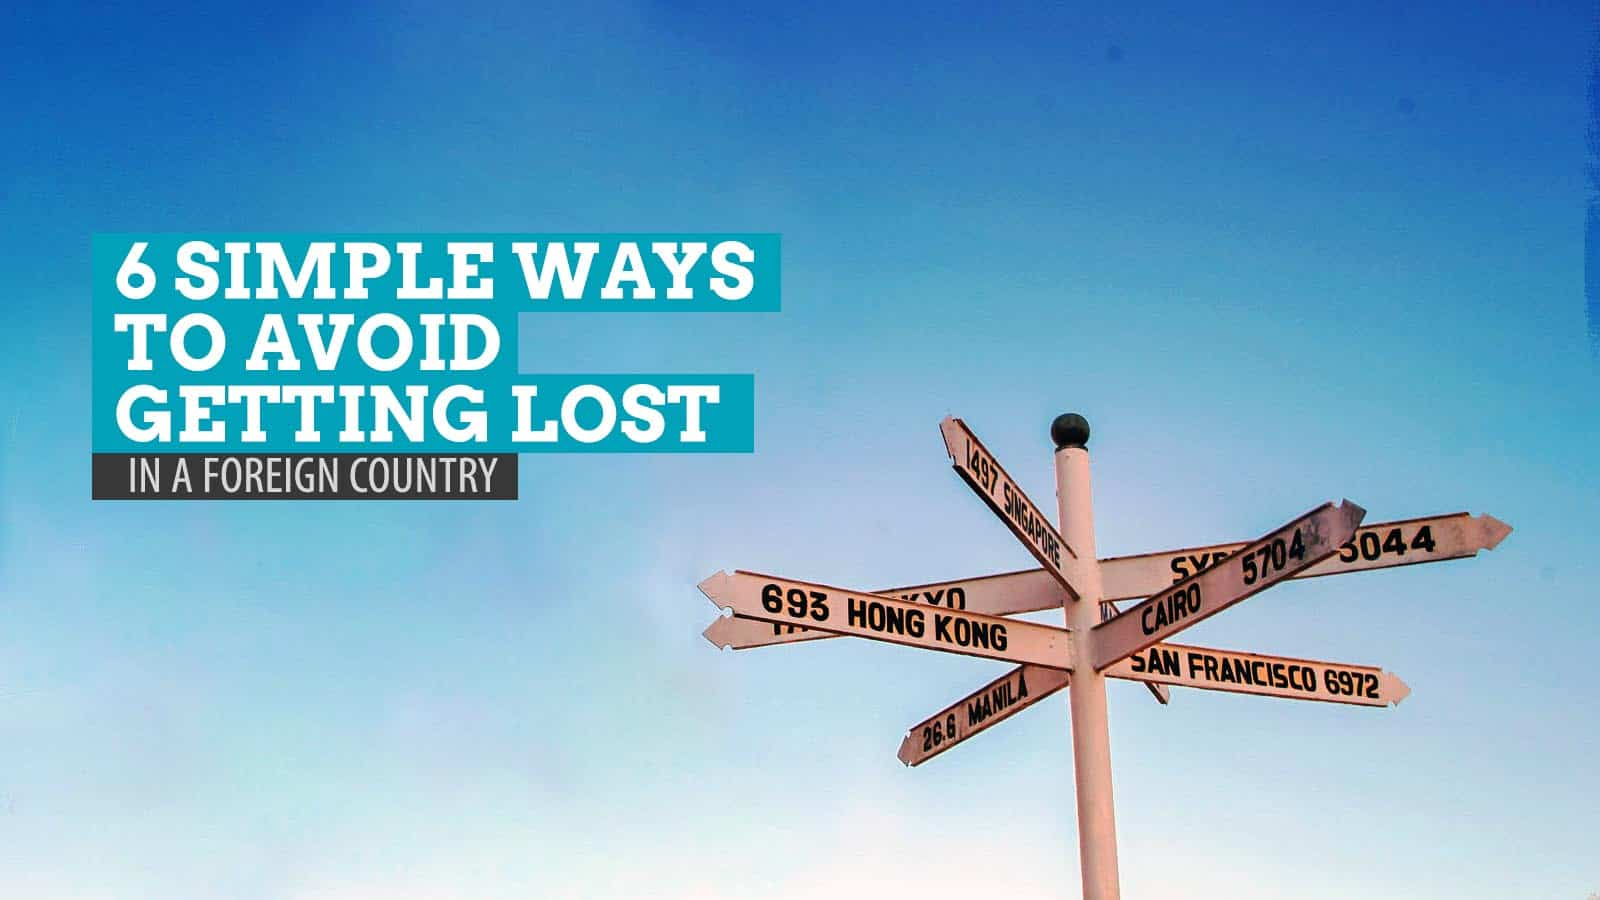 6 Simple Ways to Avoid Getting Lost in a Foreign Country